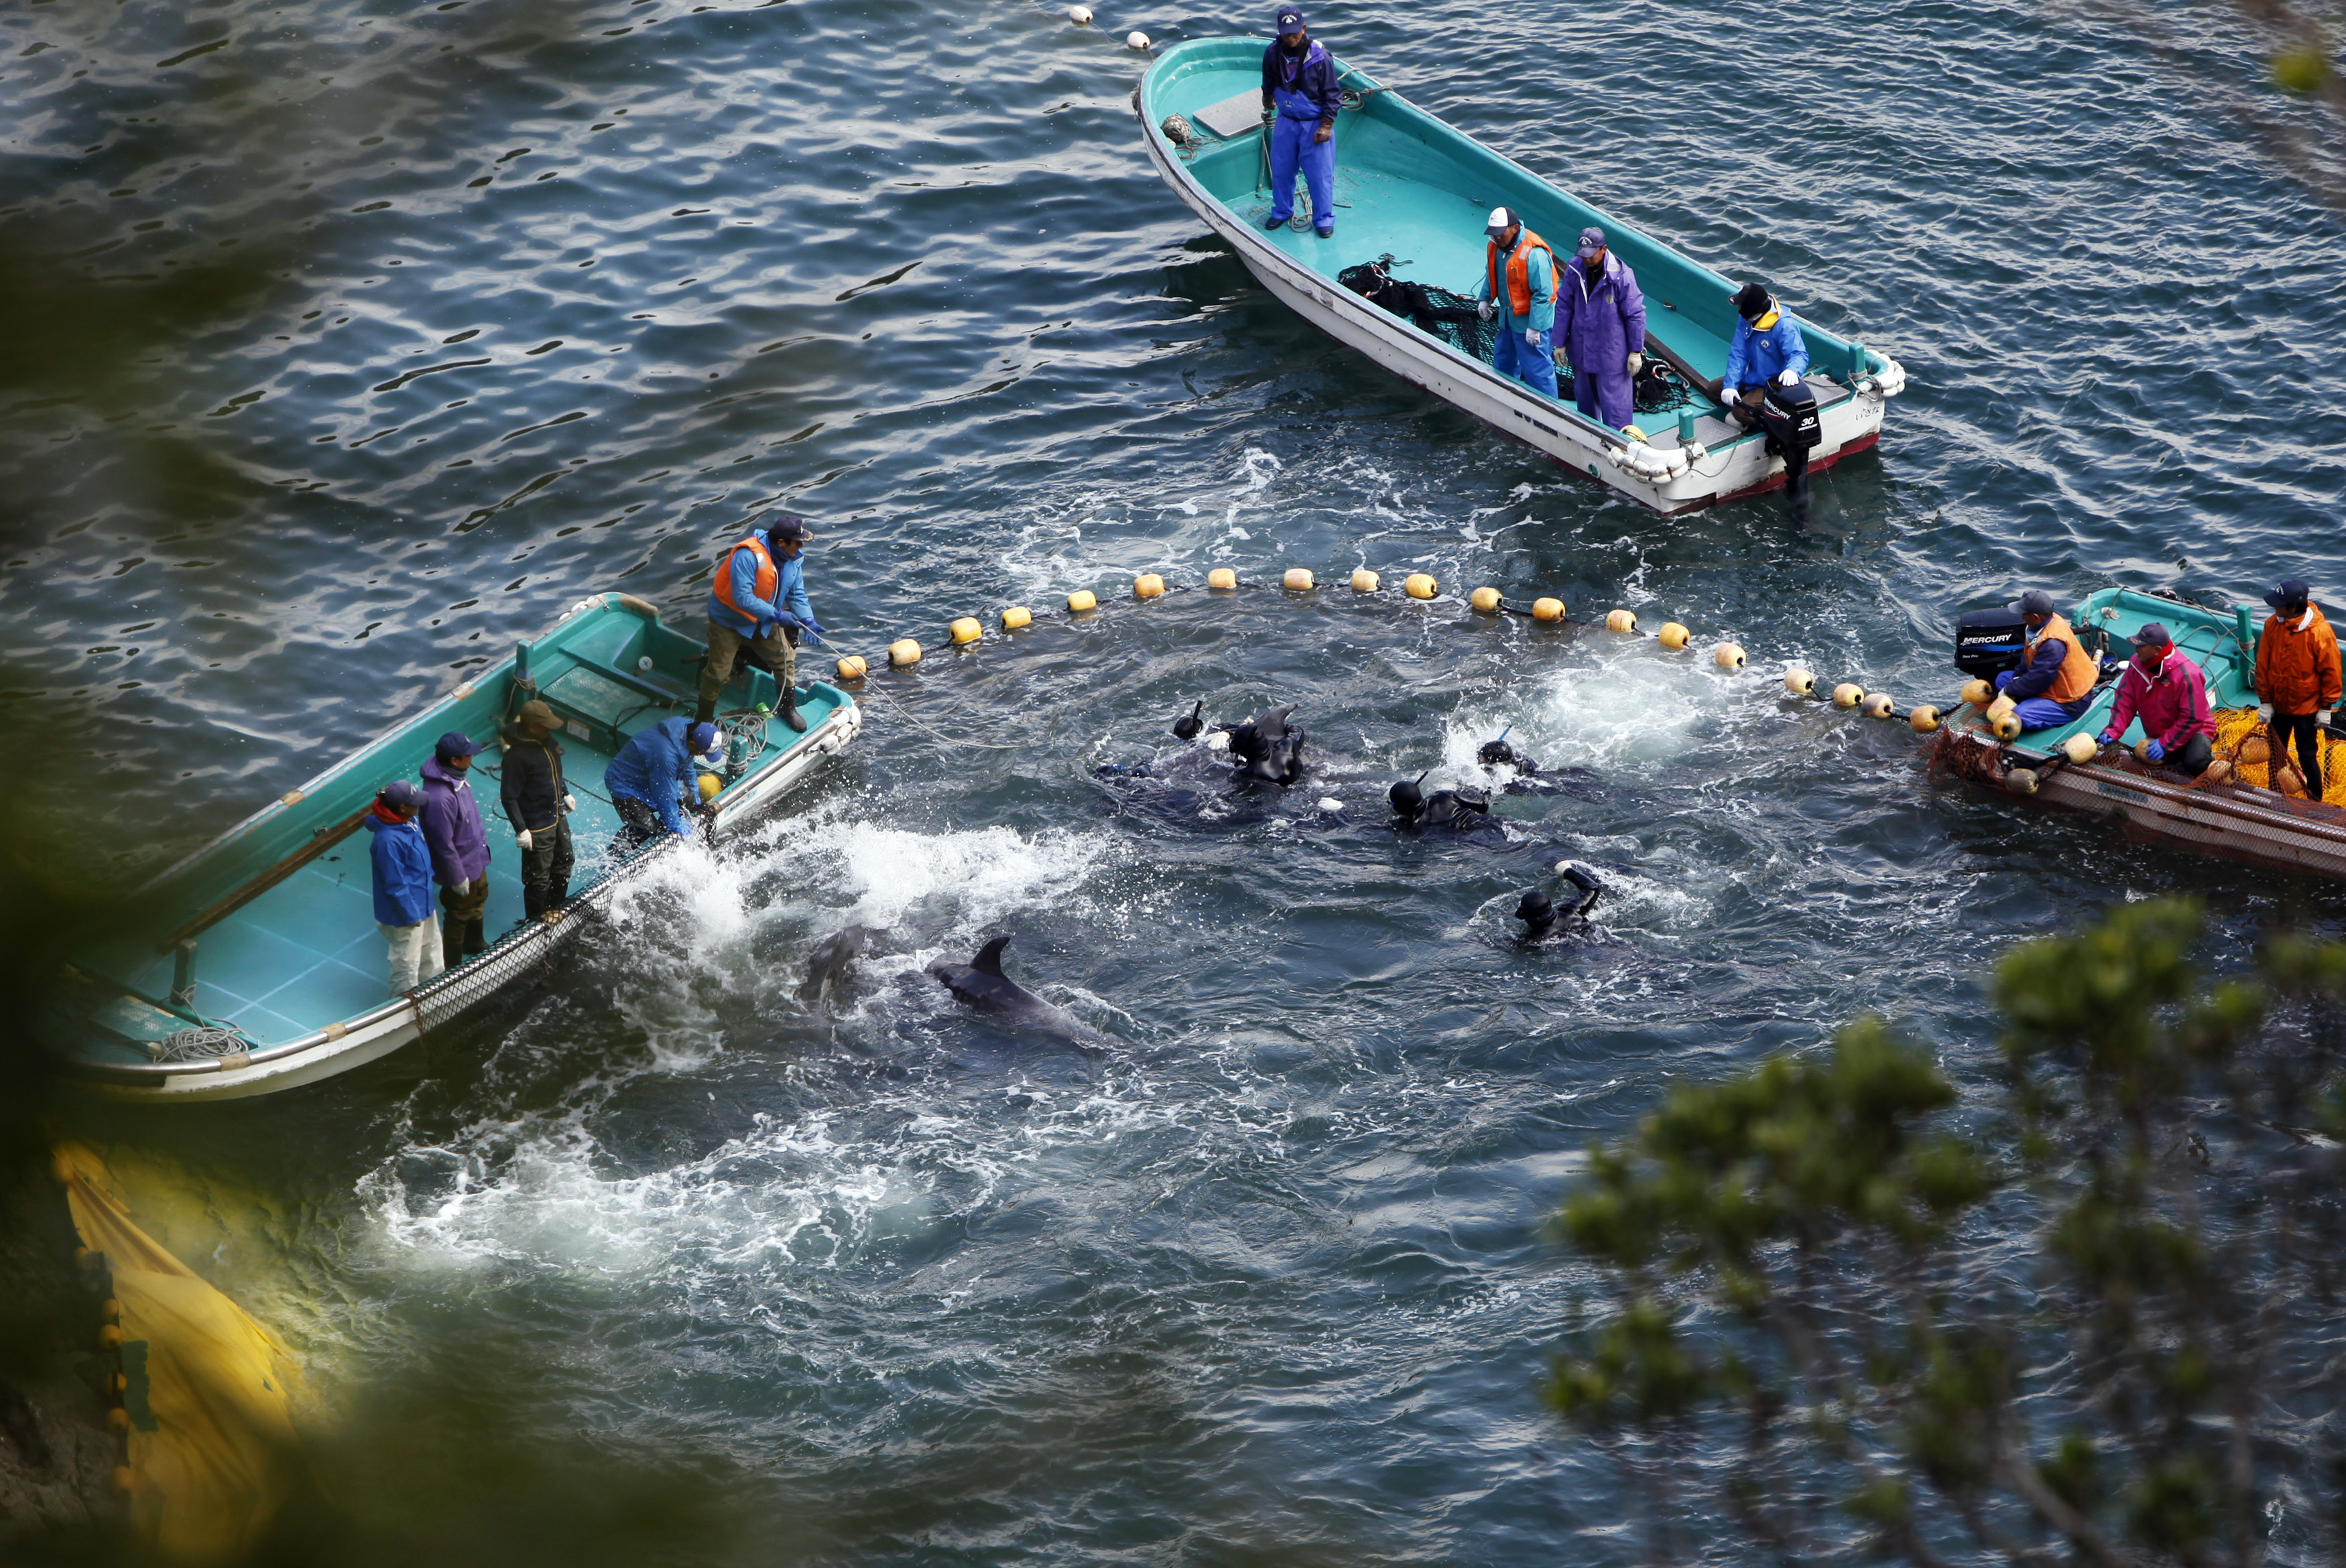 Fishermen hunt dolphins at a cove in Taiji, western Japan, on Jan. 20, 2014